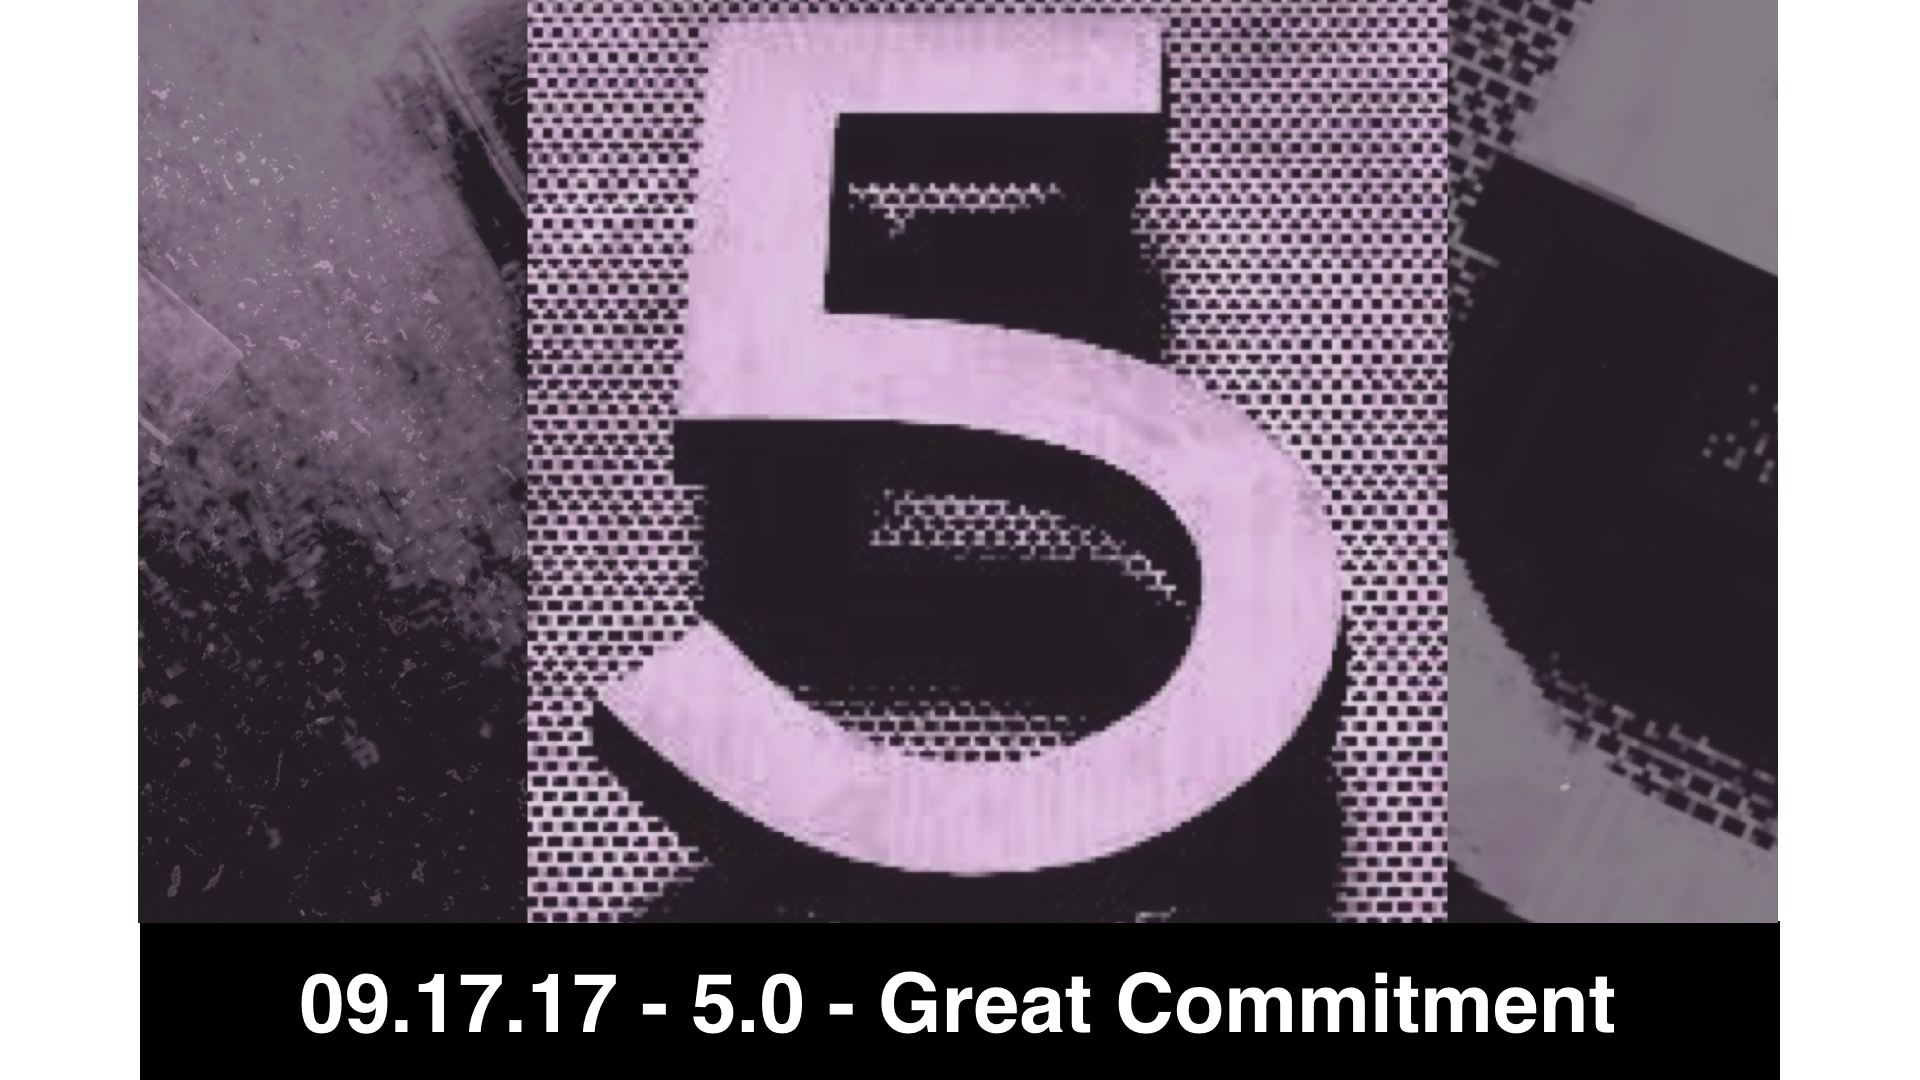 09.17.17 - 5.0 - Great Commitment